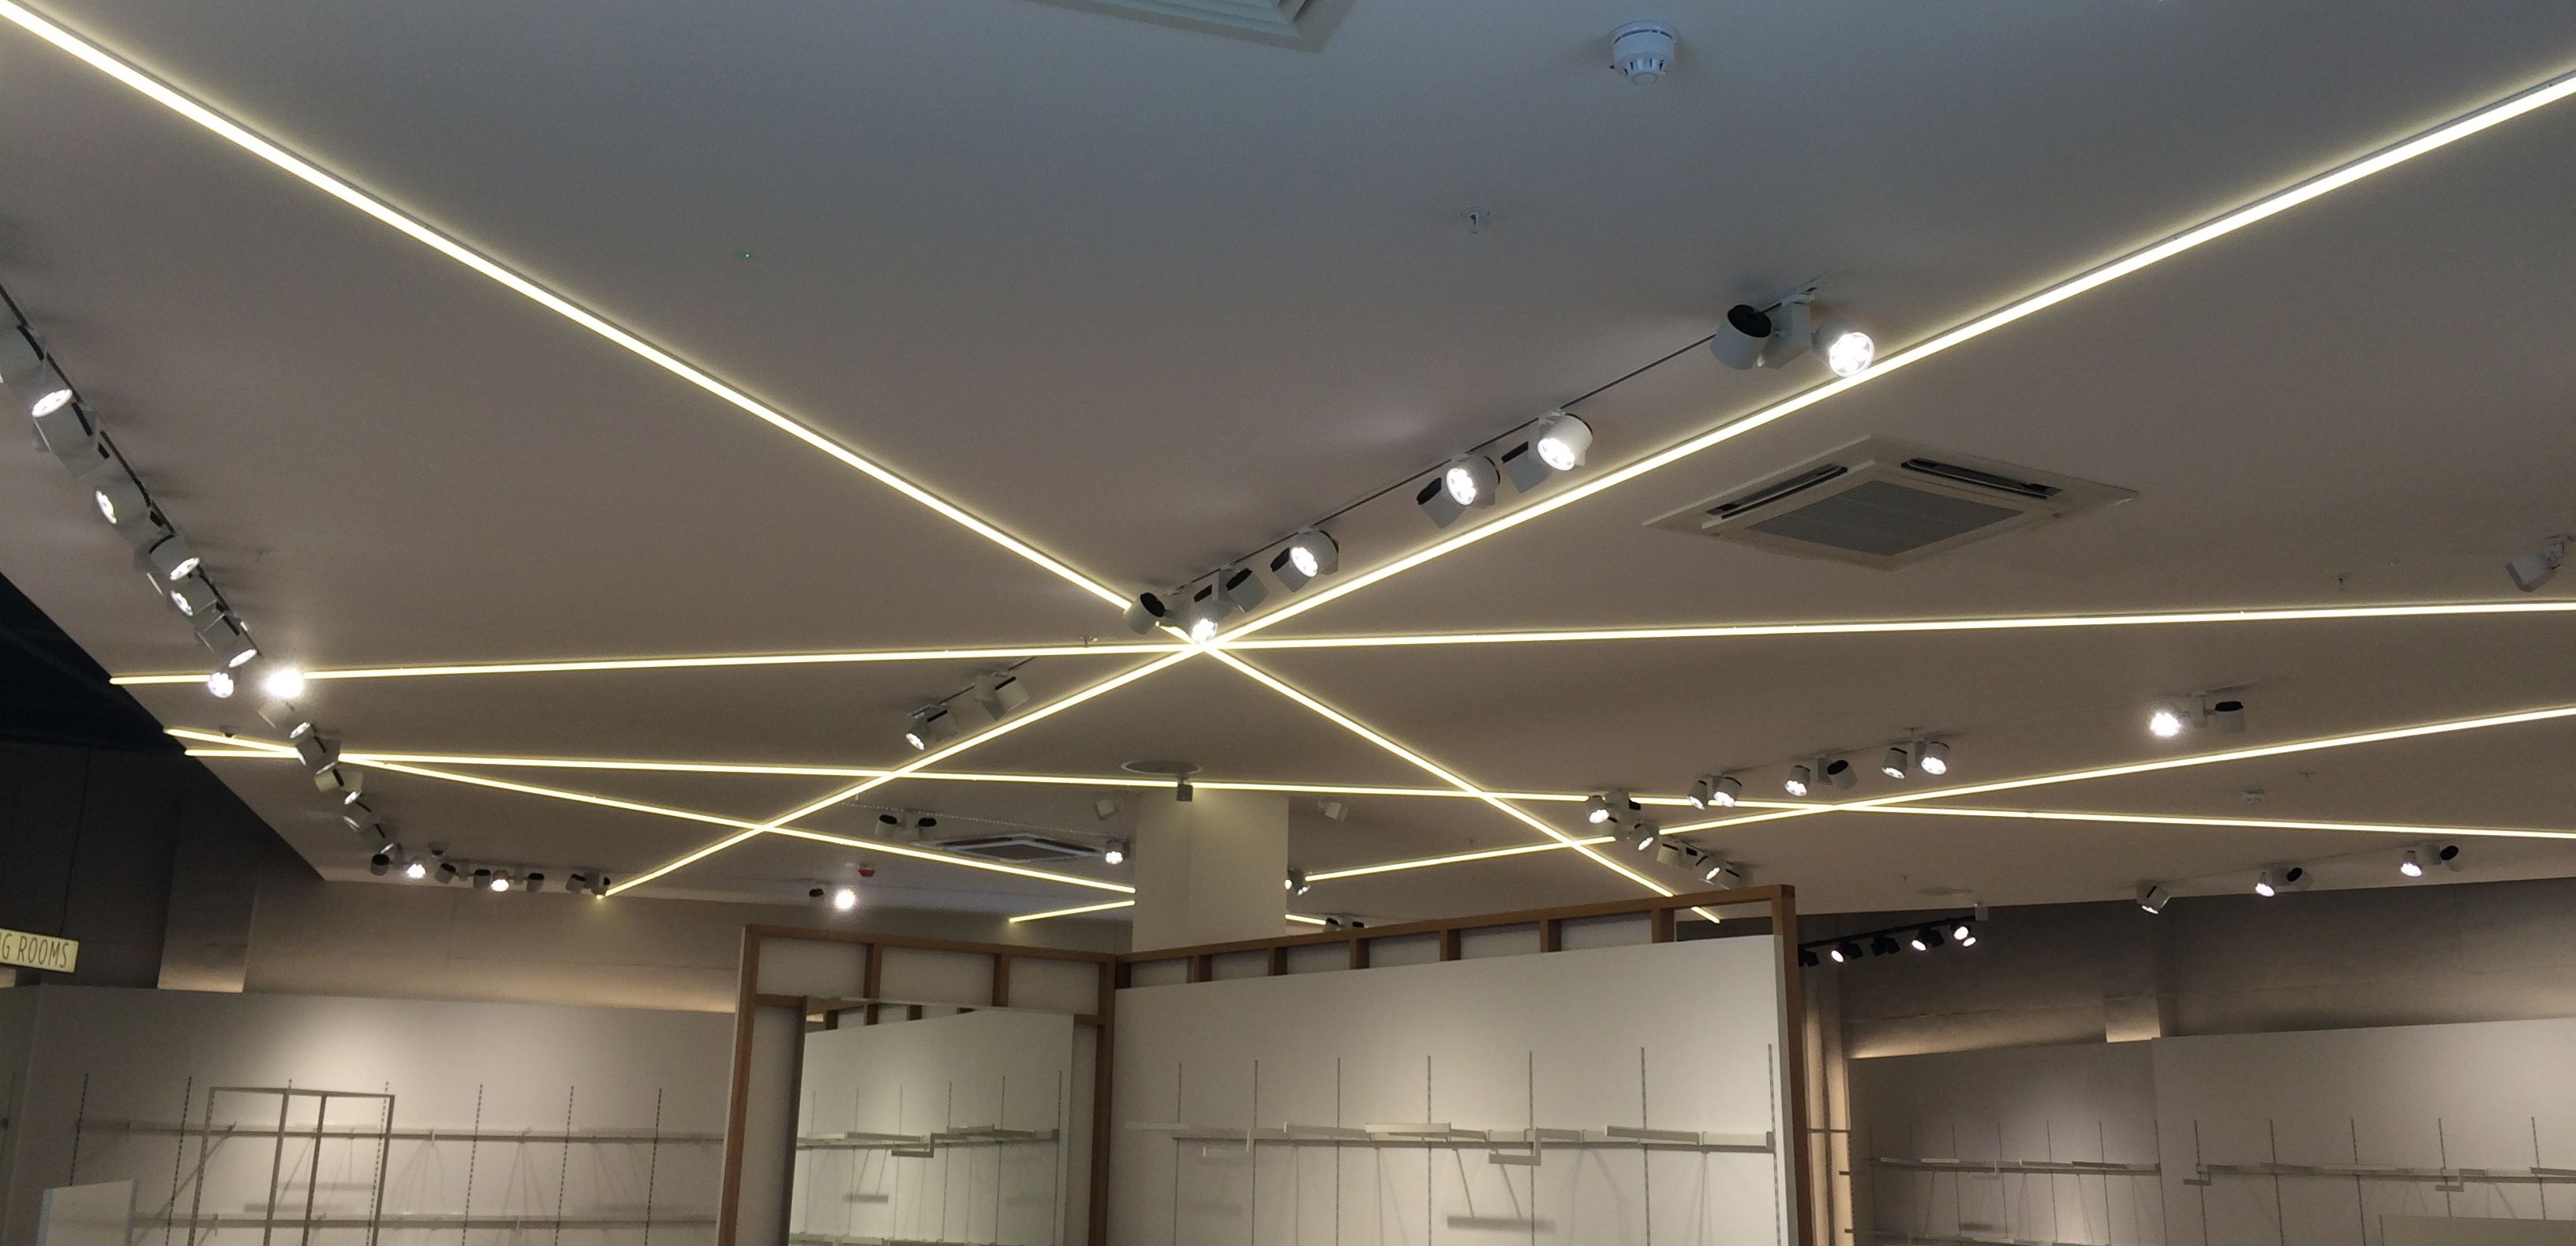 of picture lights unique design light pics led drop fresh ceiling lighting impressive awesome panels